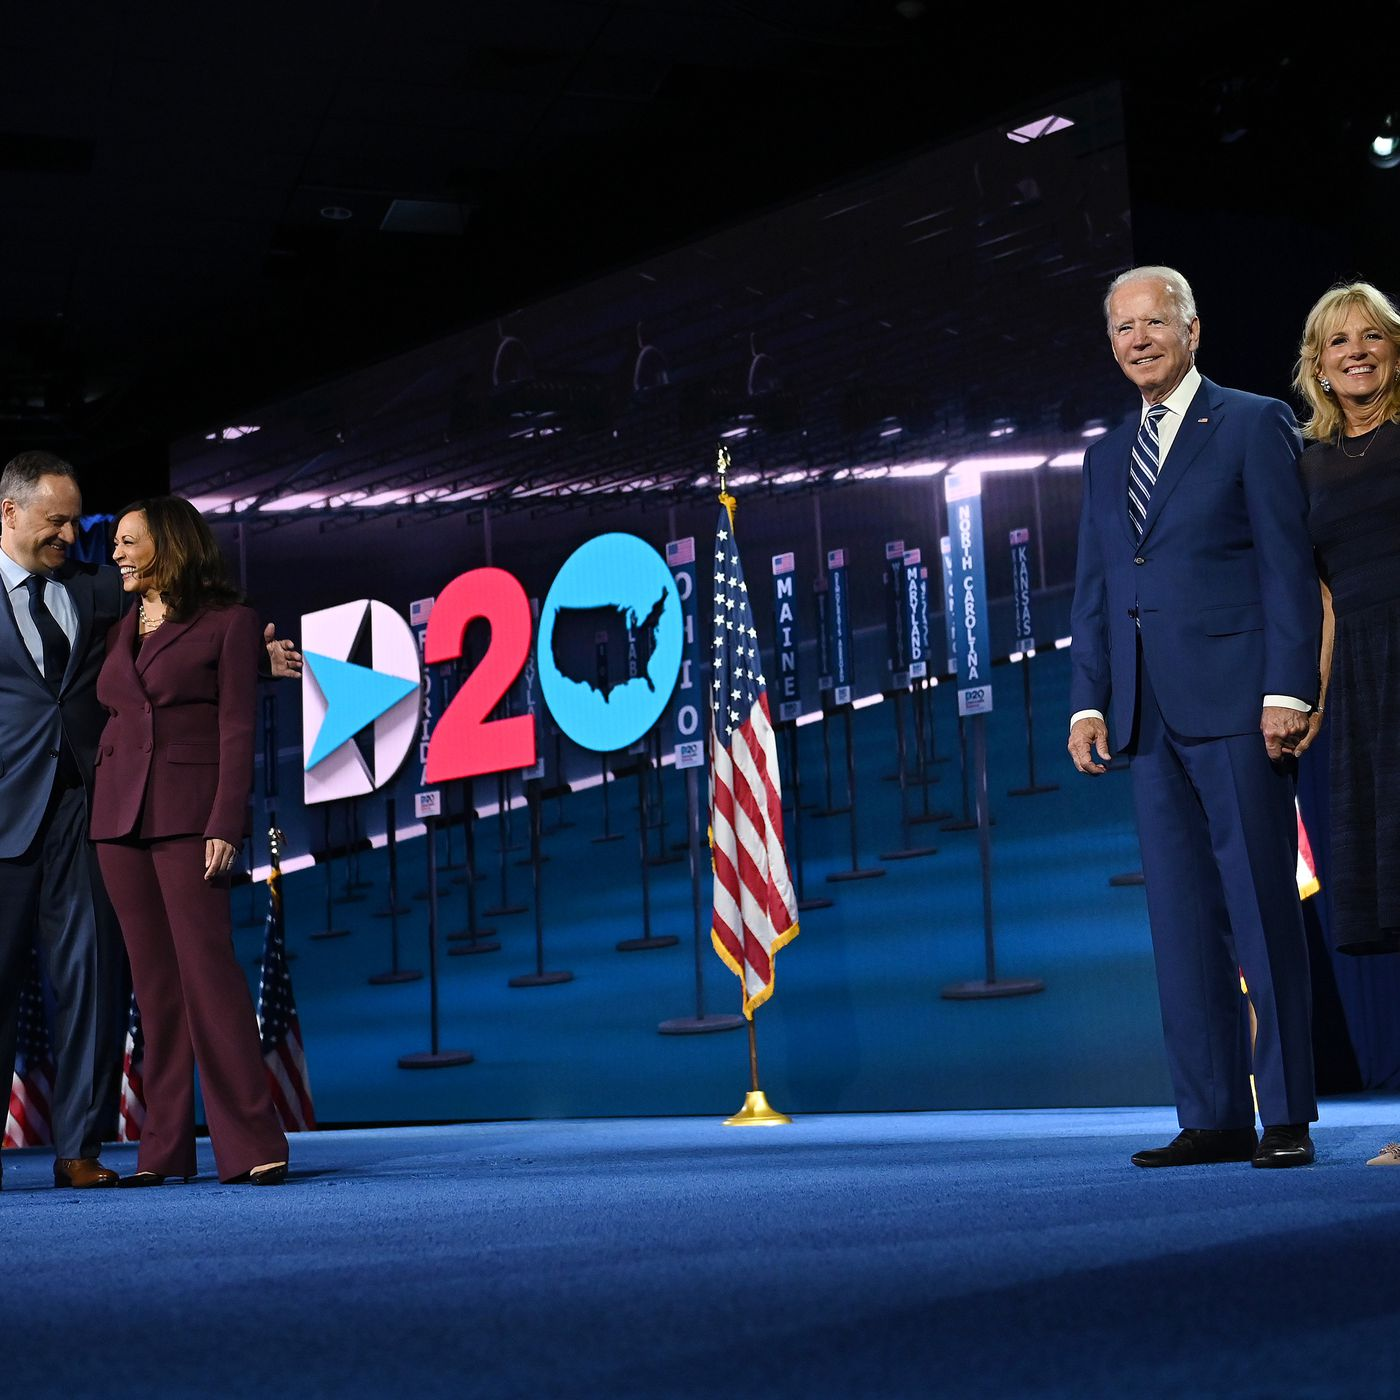 Kamala Harris Jill Biden And The National Embrace Of Stepmoms And Blended Families Vox